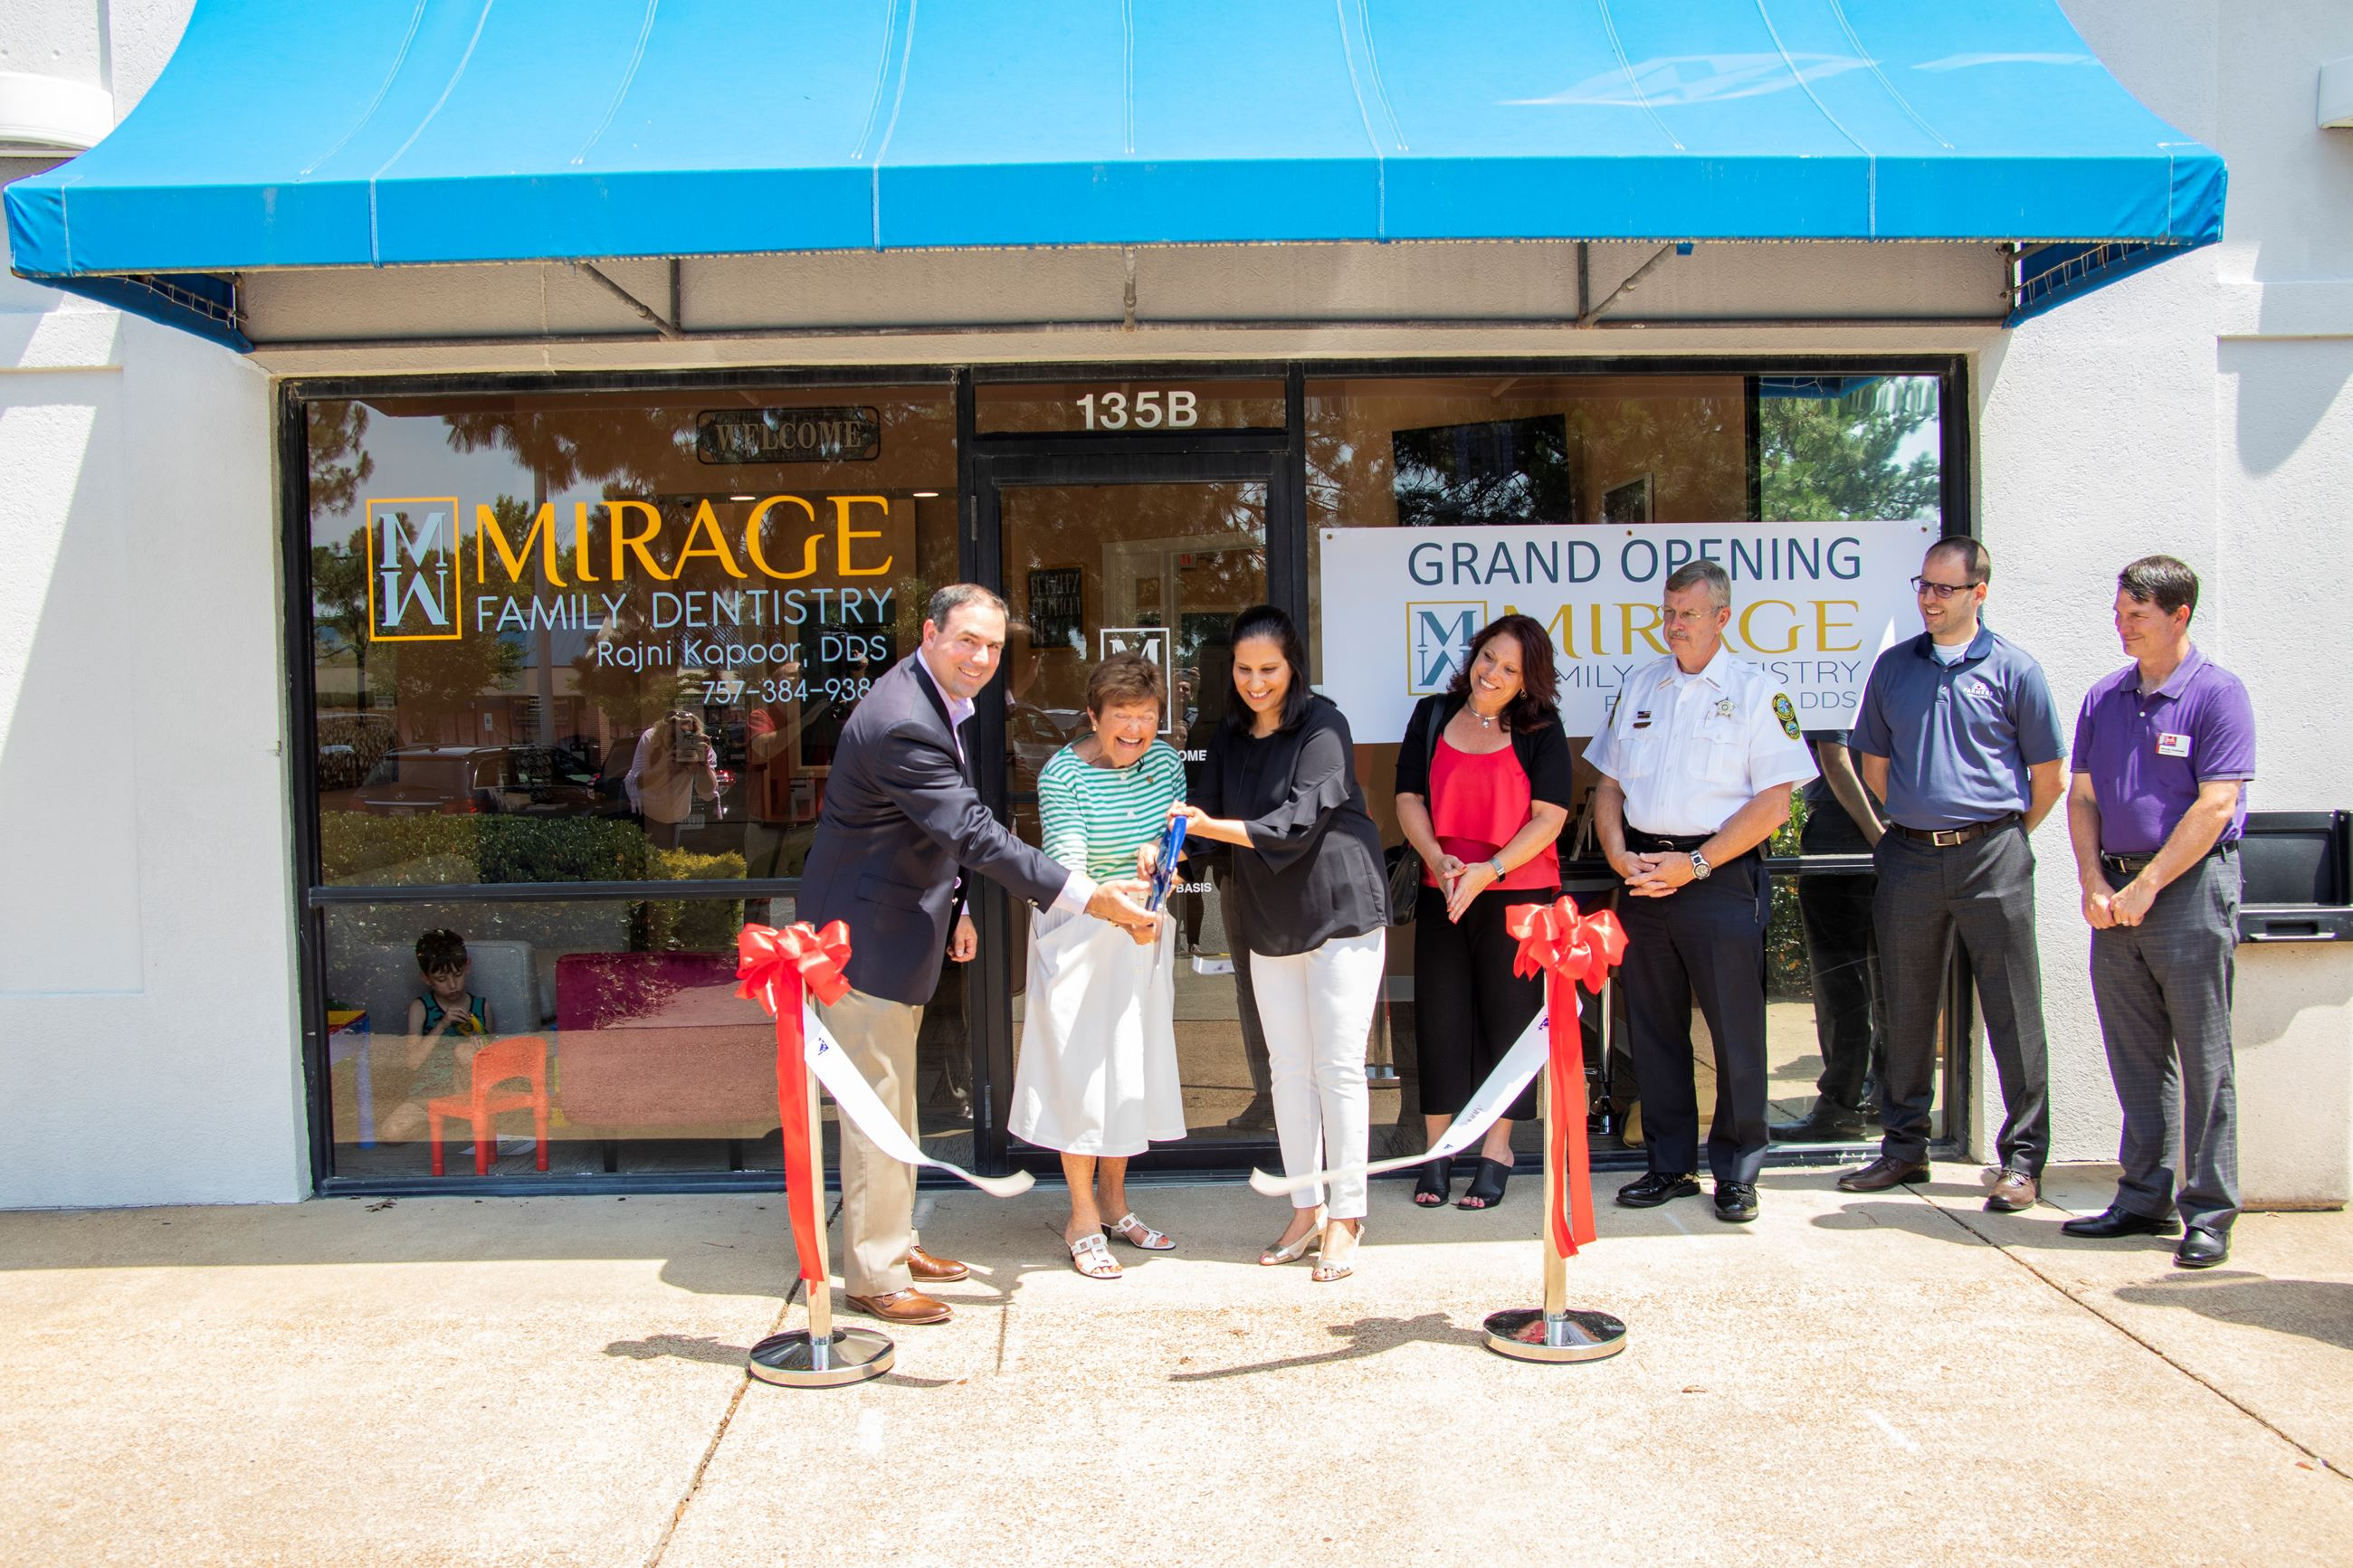 Mirage Family Dentistry